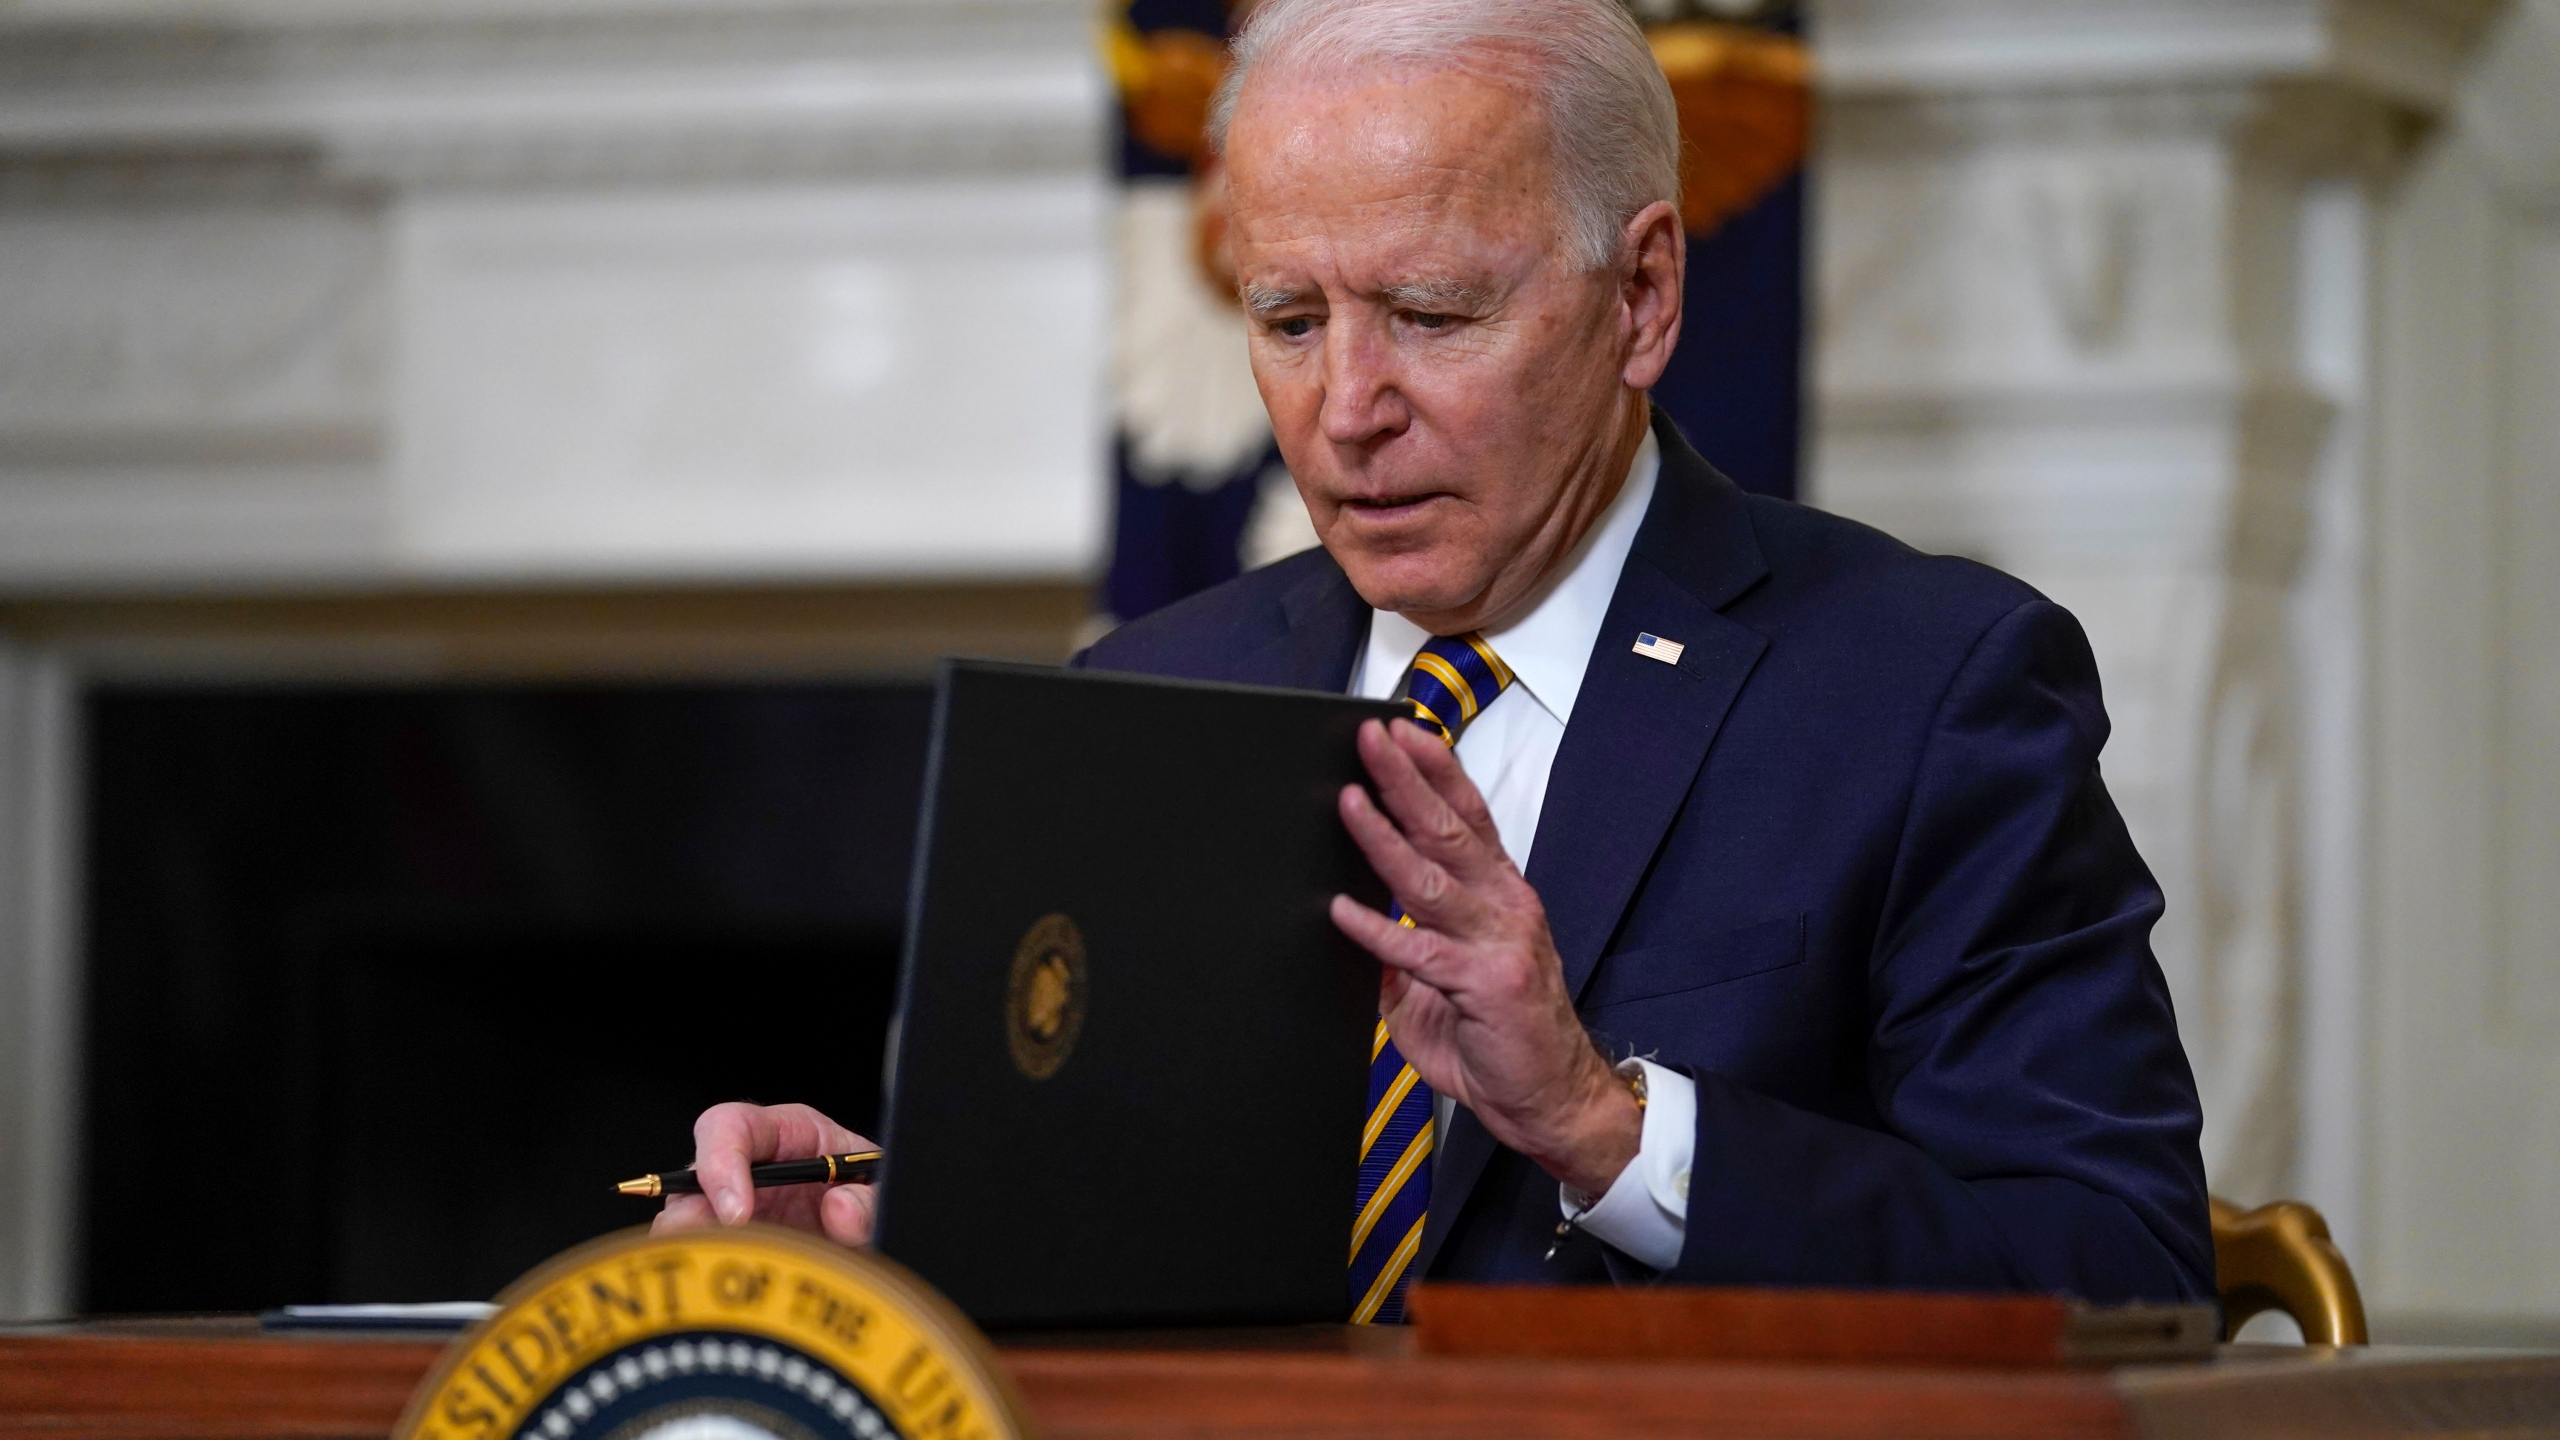 President Joe Biden closes the folder after signing an executive order relating to U.S. supply chains, in the State Dining Room of the White House on Feb. 24, 2021. (Evan Vucci / Associated Press)